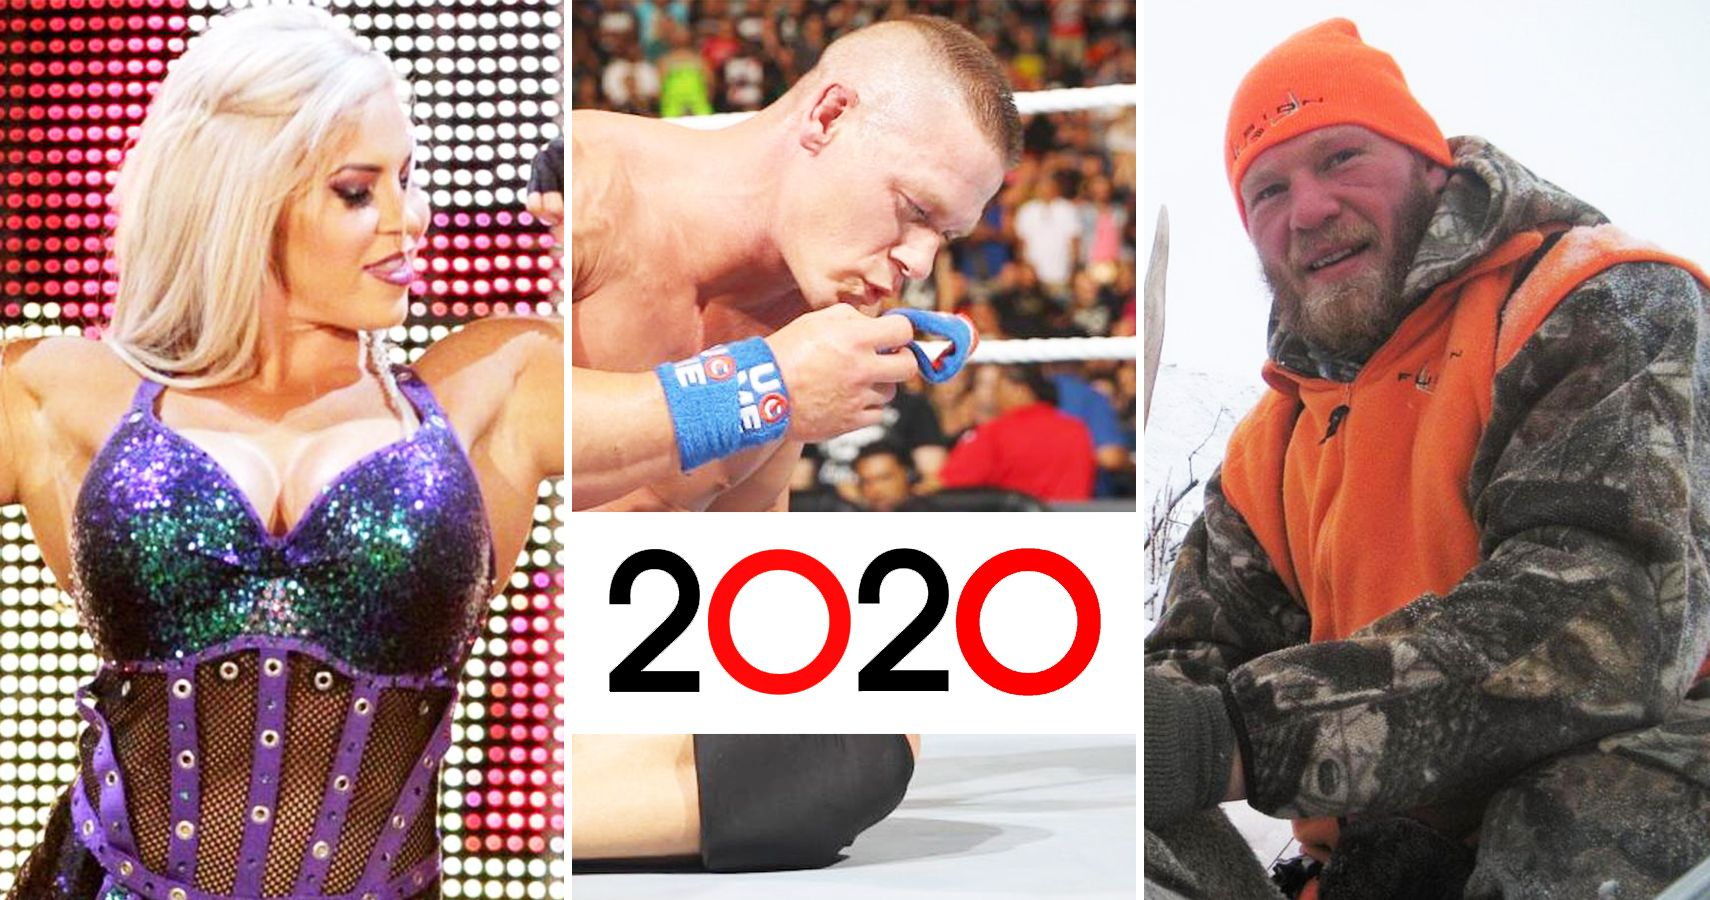 Wwe Best Wrestlers 2020 Top 15 Wrestlers Who Will Not Be On The WWE Roster By 2020